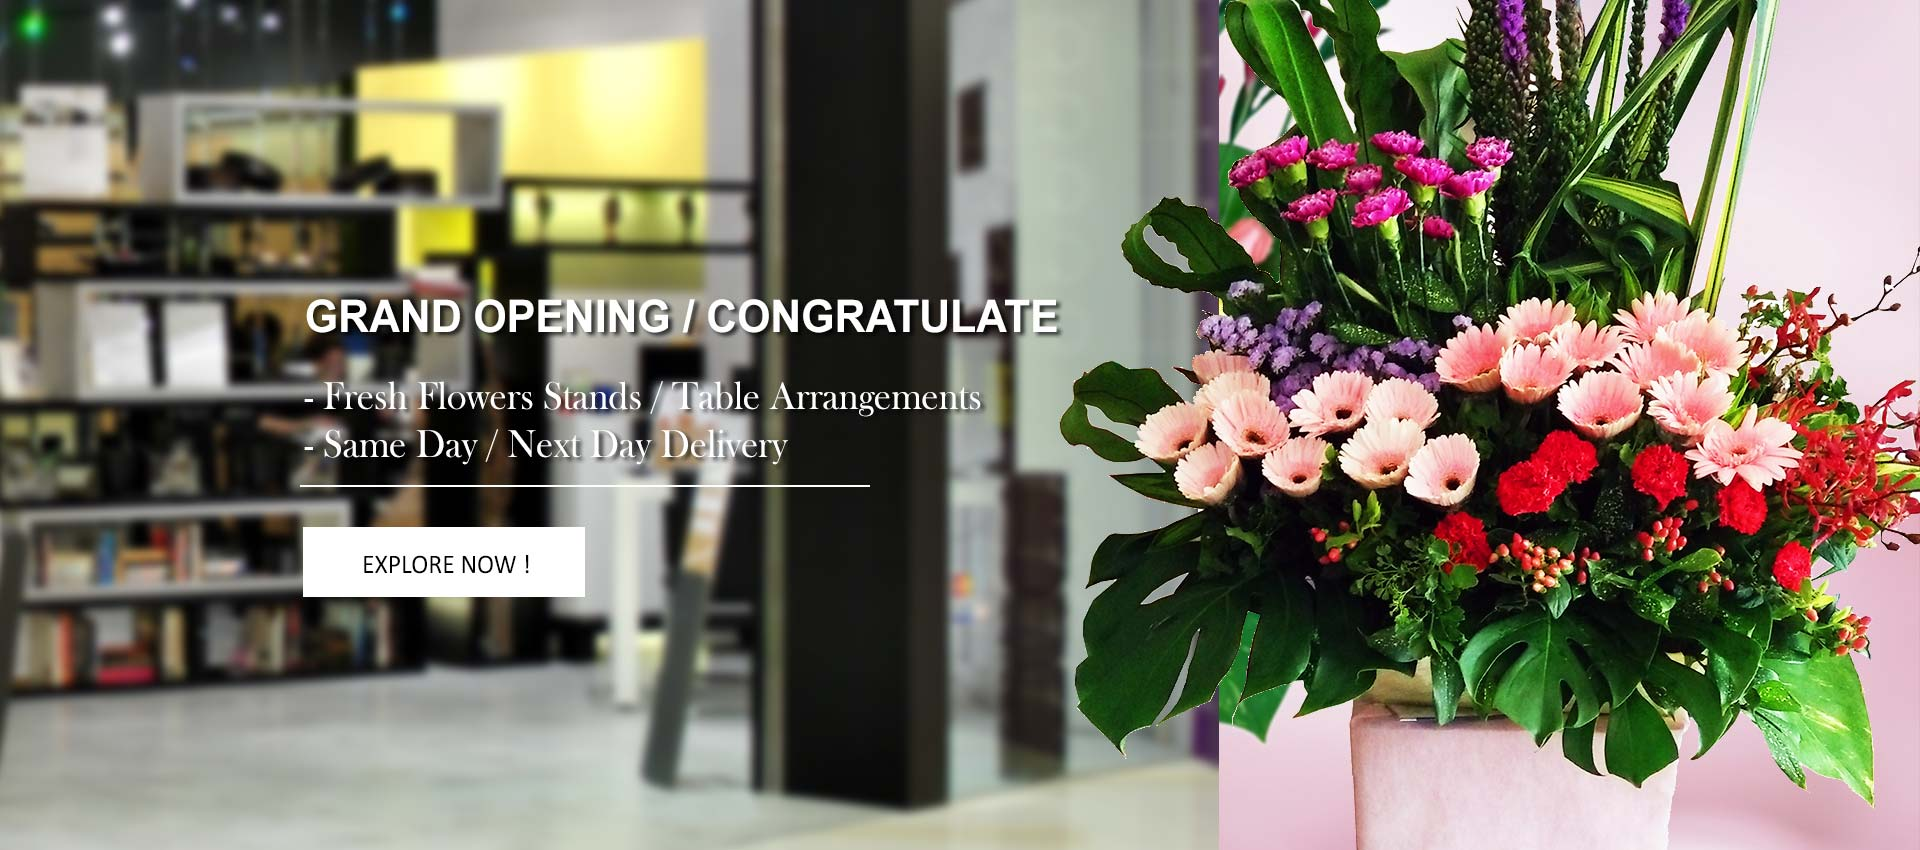 Grand Opening | Fresh Flowers Opening Stand & Congratulate Flowers | Myflowerflorist.com